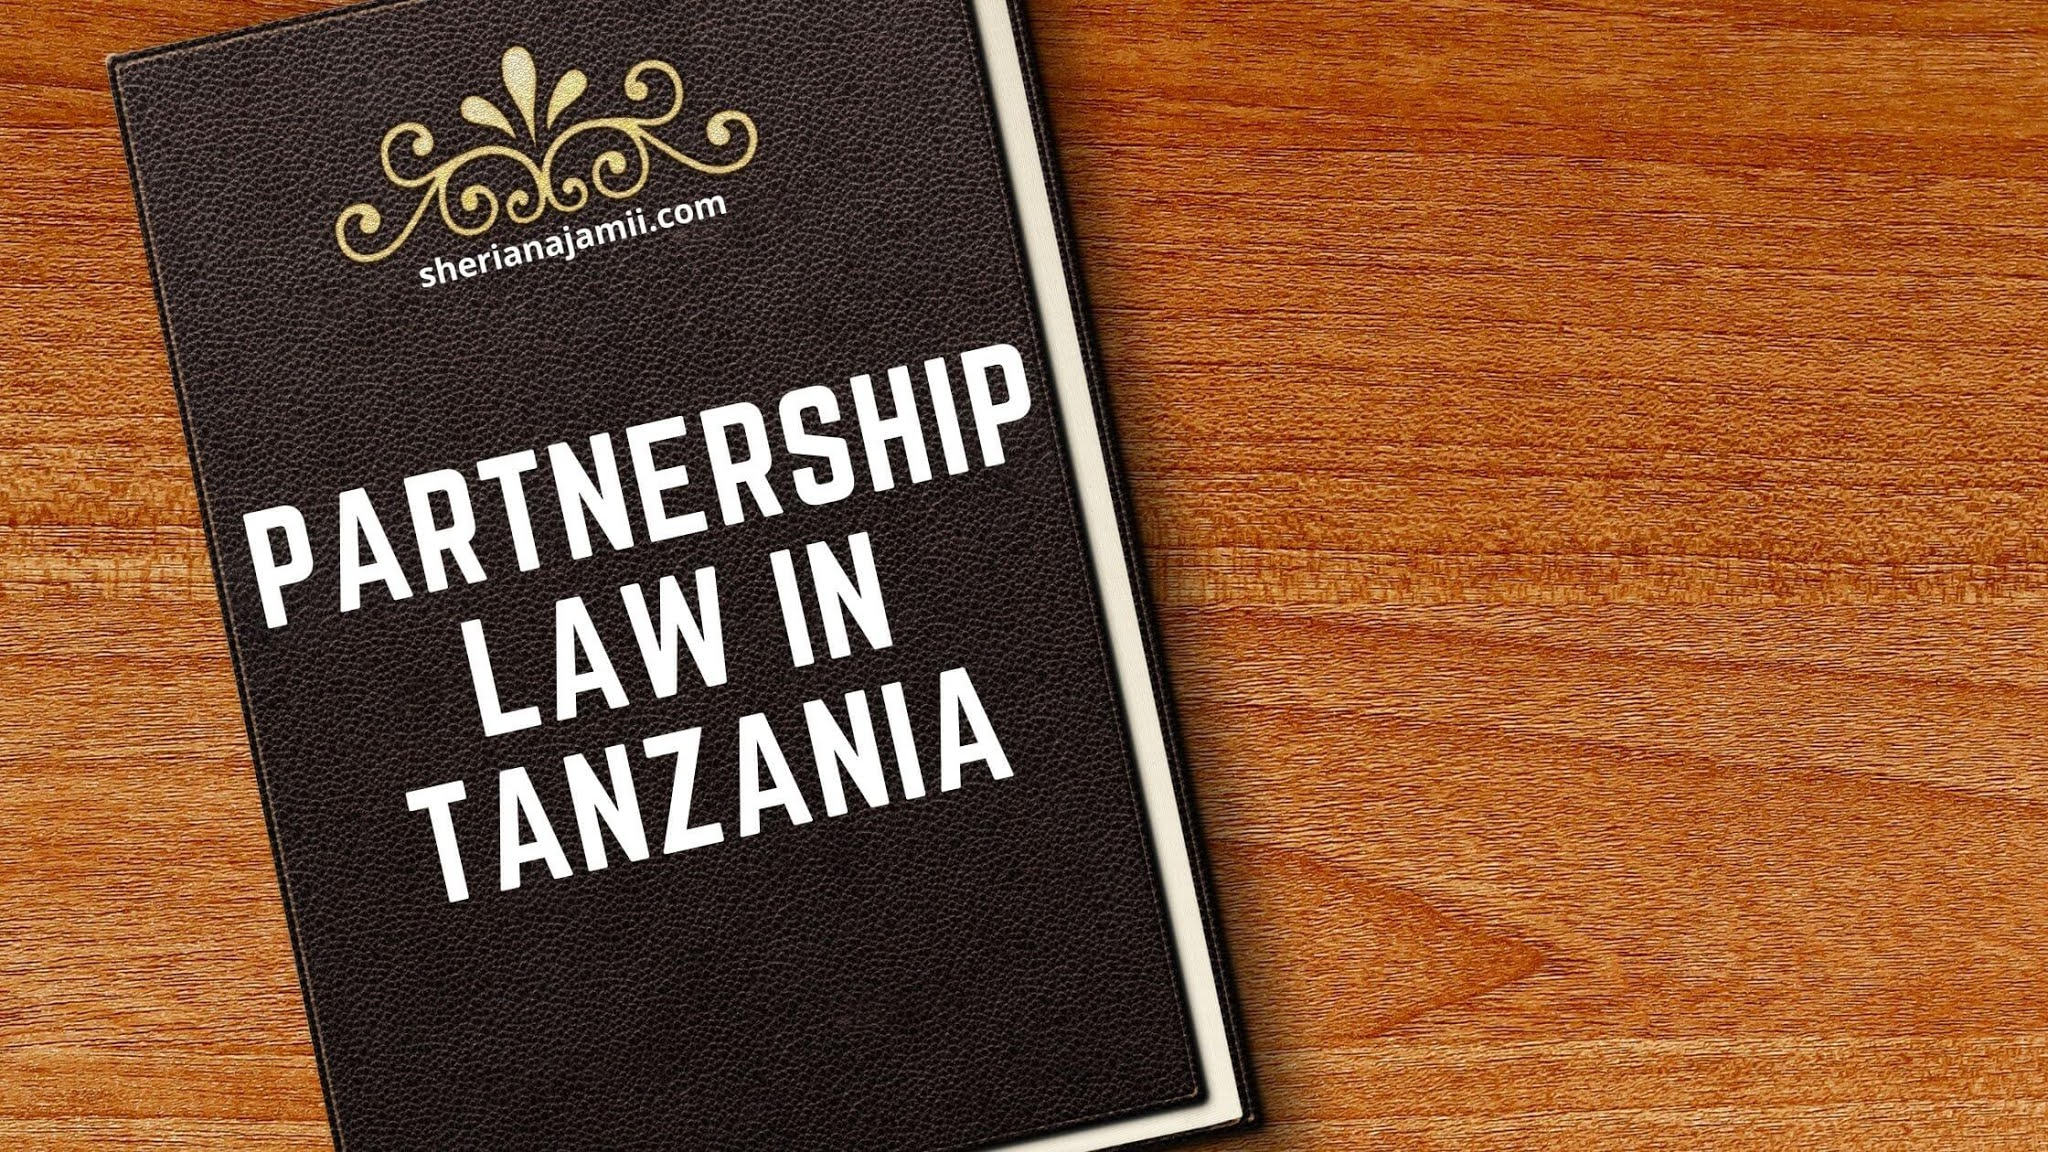 Partnership law in Tanzania, meaning of partnership, formation of partnership,  types of partners, Expulsion of Partners, dissolution of partnership, partnership property, Duties and Rights of Partners